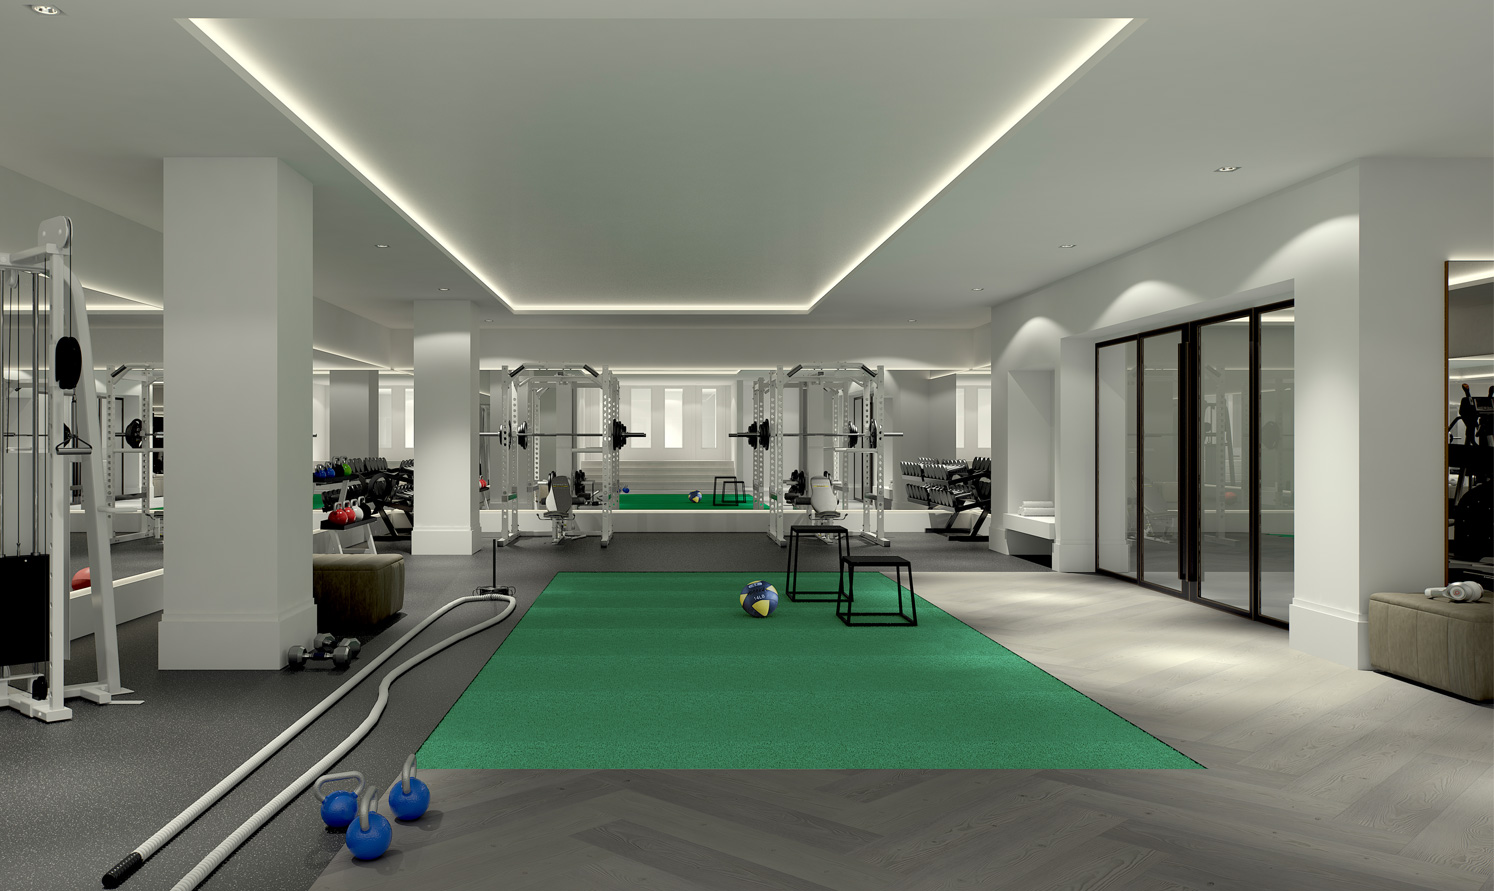 Training studio by Piet Boon with Kevin Dineen